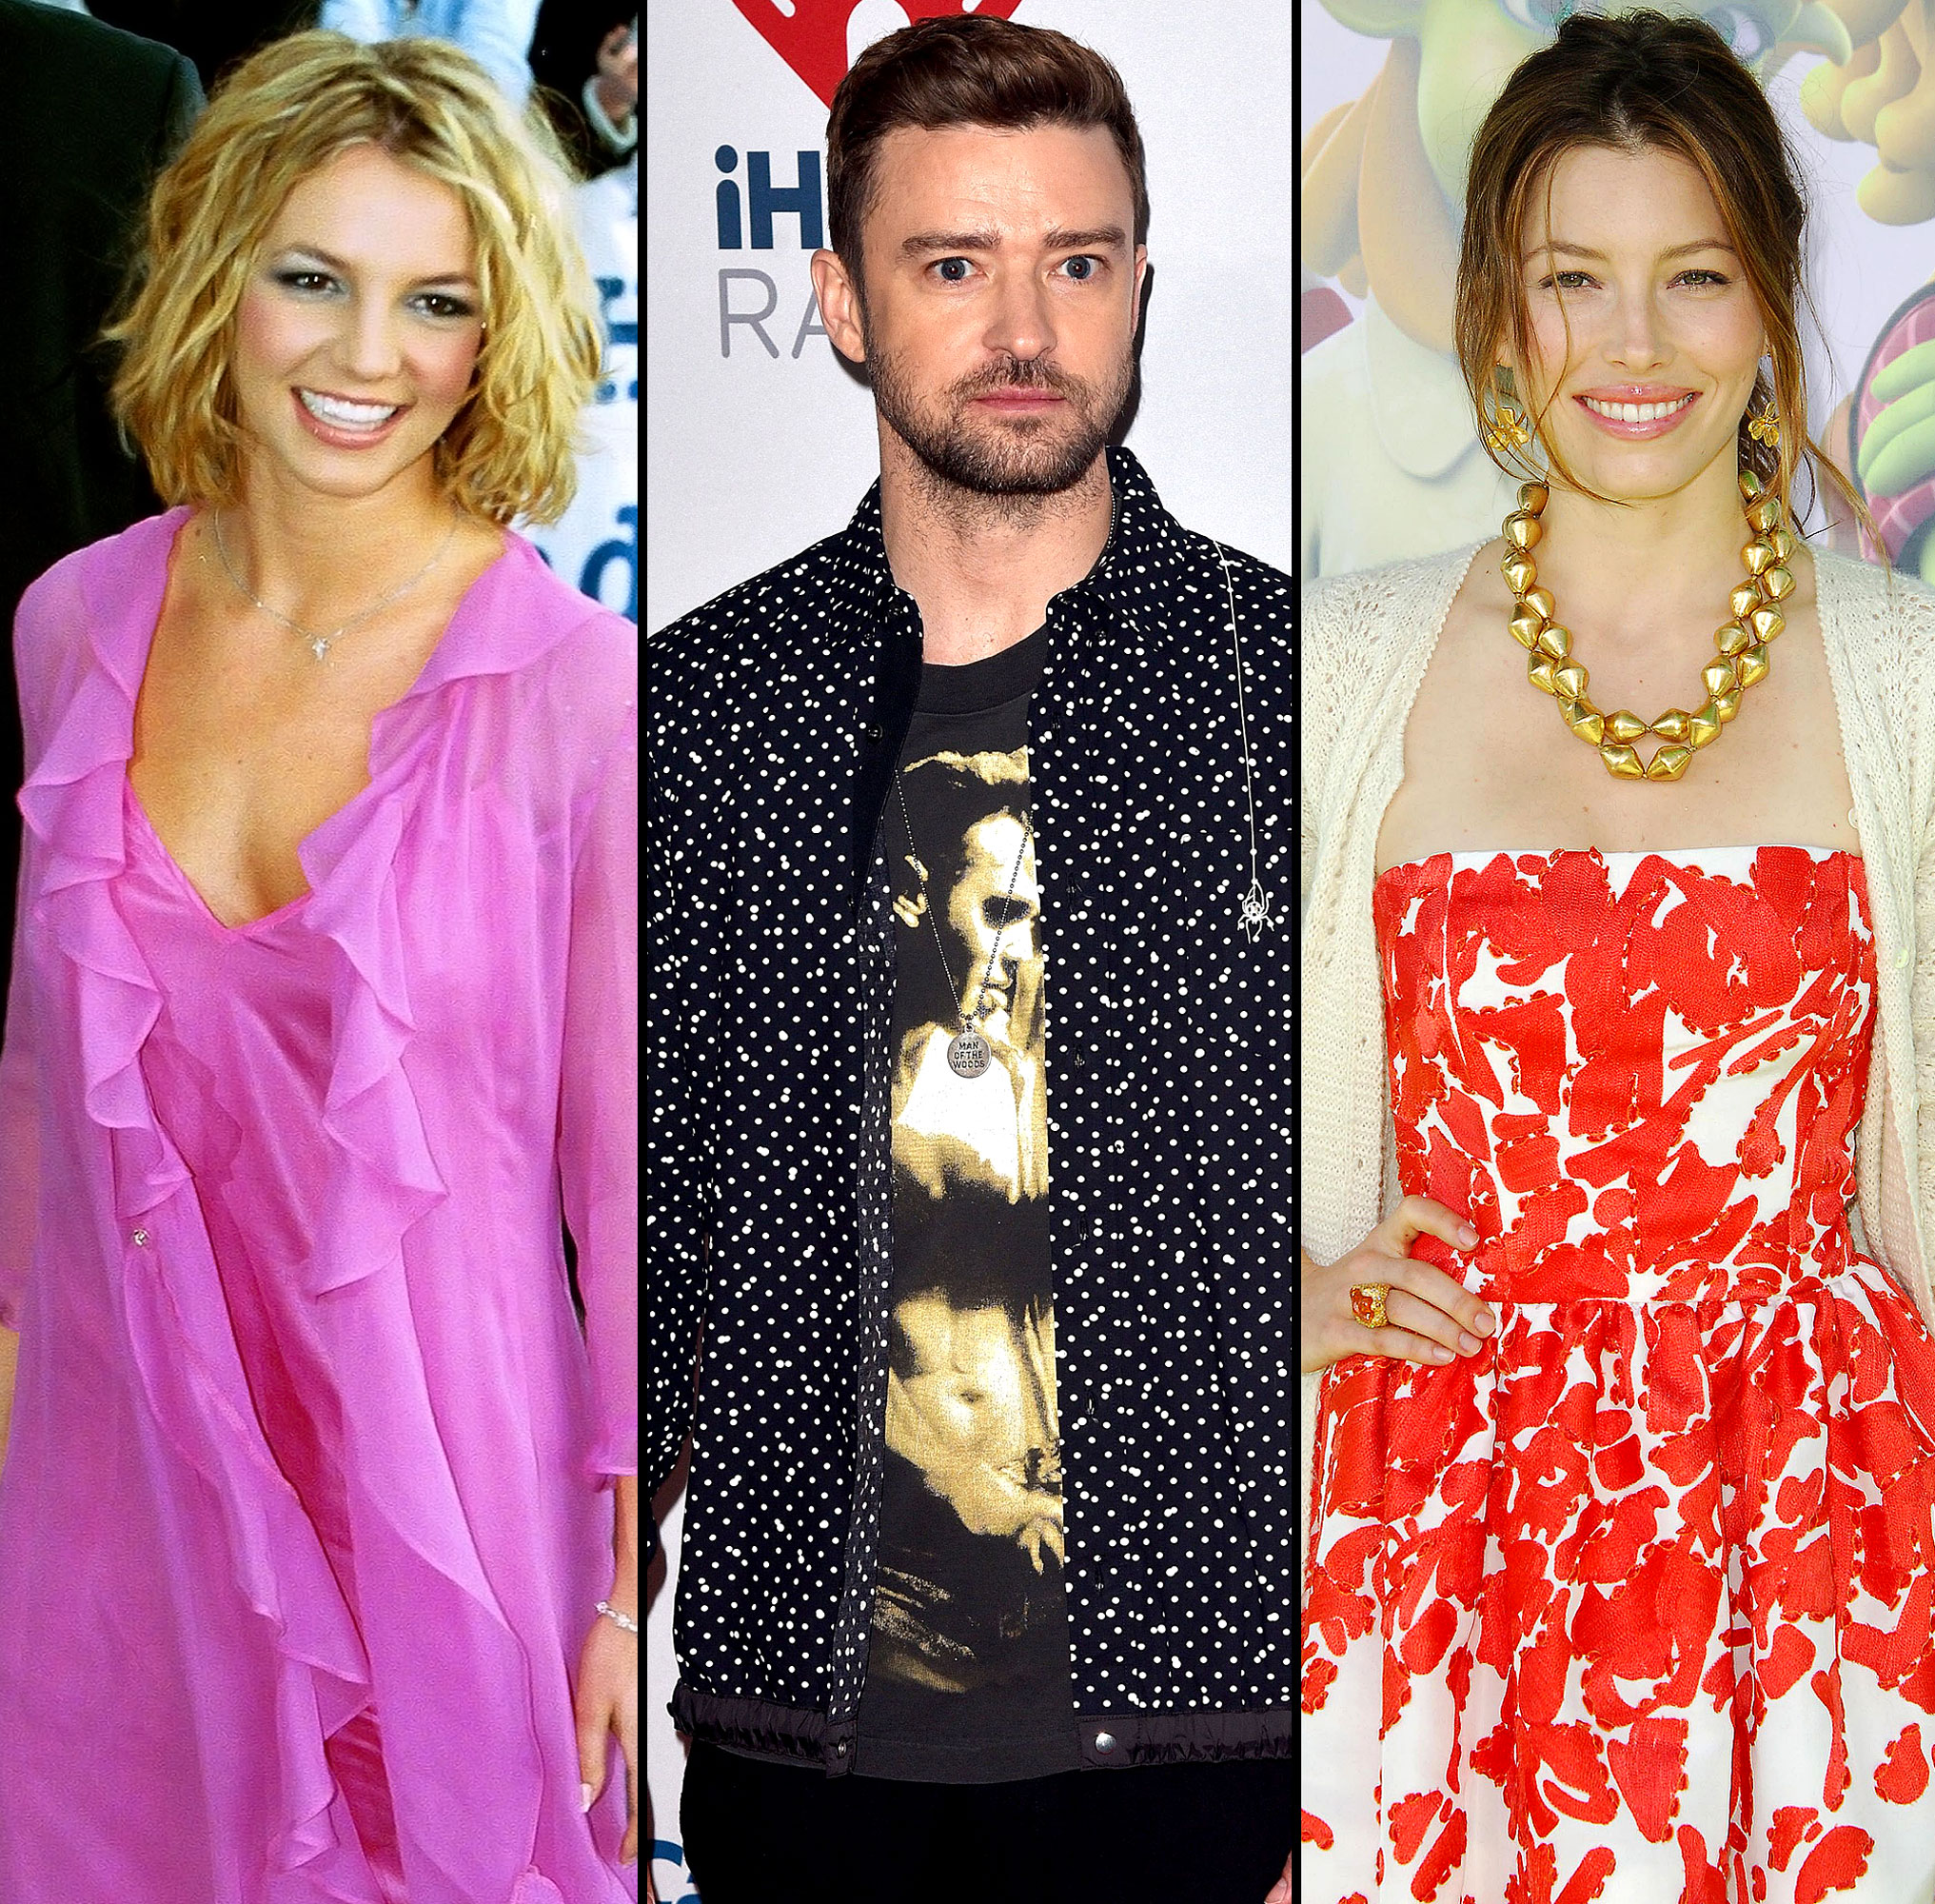 Justin Timberlake S Dating History From Britney Spears To Jessica Biel